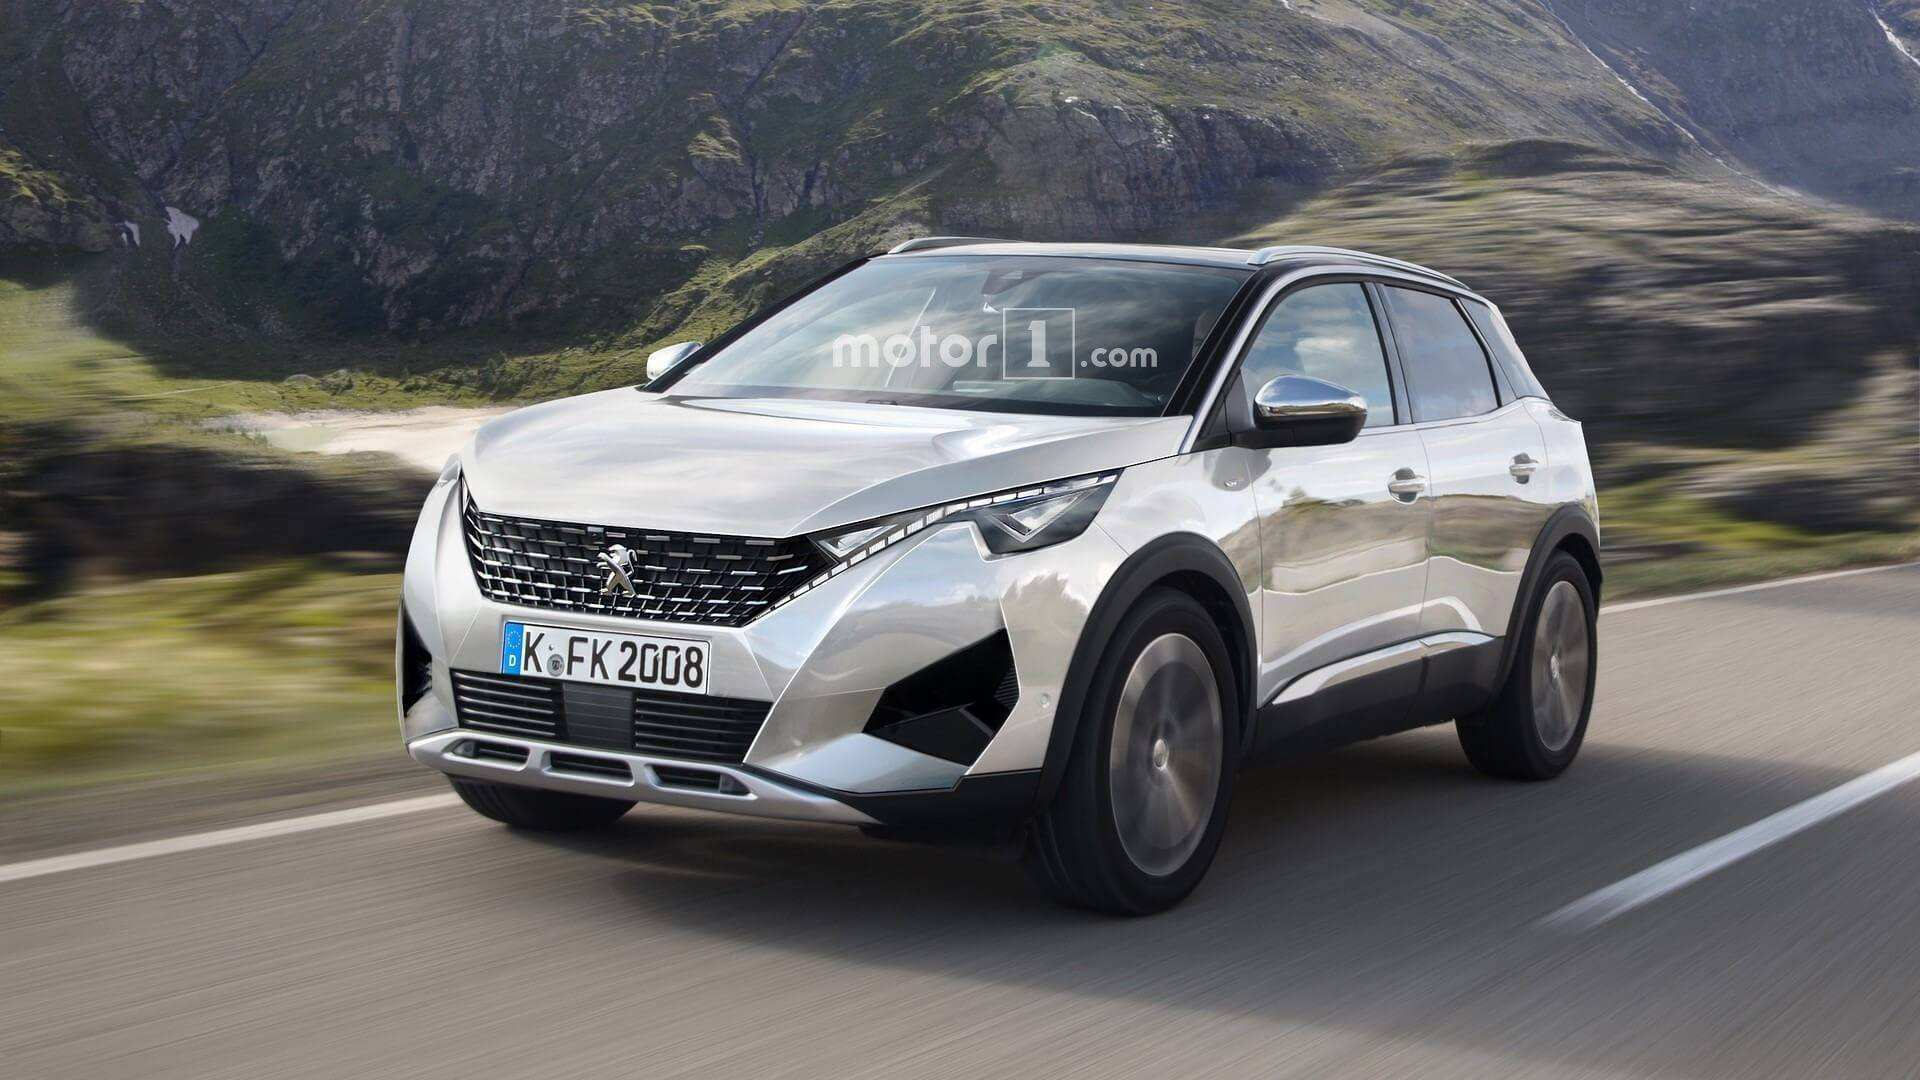 31 All New 2019 Peugeot First Drive with 2019 Peugeot